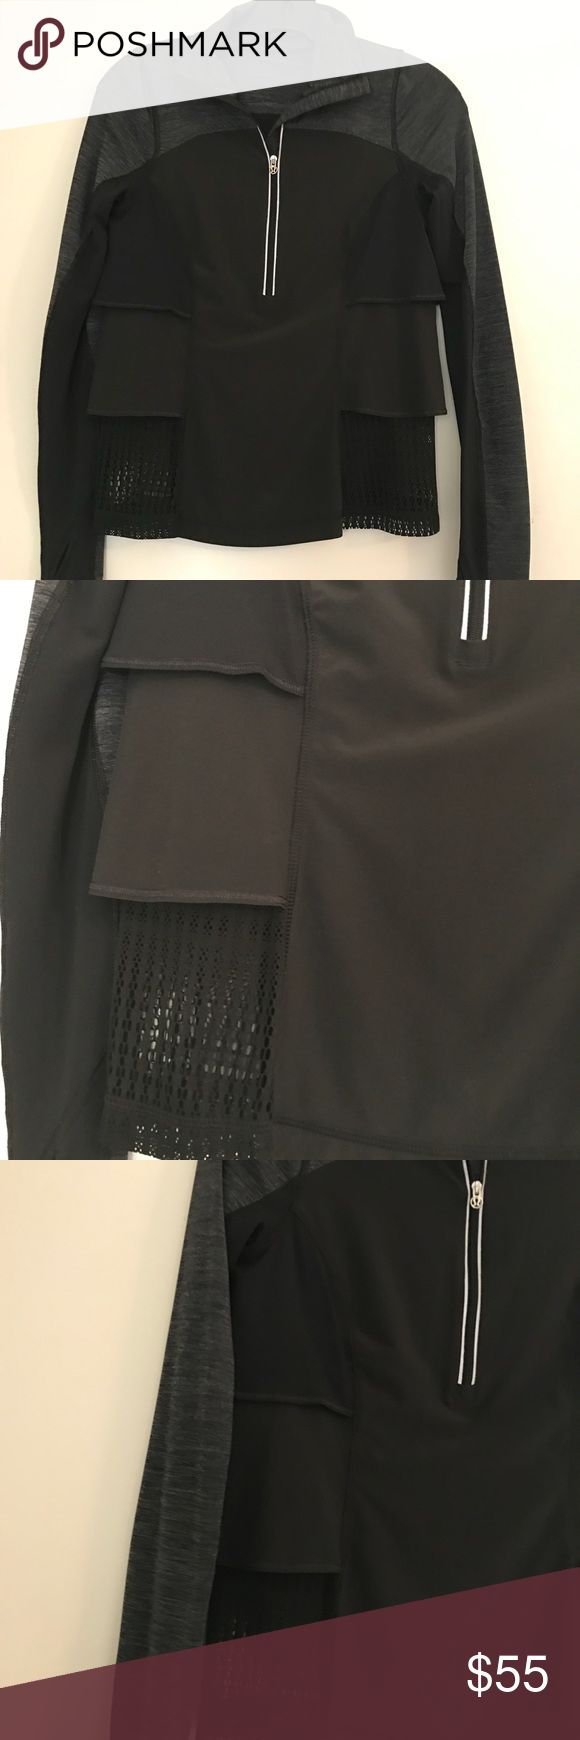 Lululemon 3/4 zip long sleeved top Lululemon black workout top with a 3/4 zip. Grey on sleeves and collar. Cute tiered/ruffle detail on sides with mesh that makes this fun and flattering. Size 2 lululemon athletica Tops